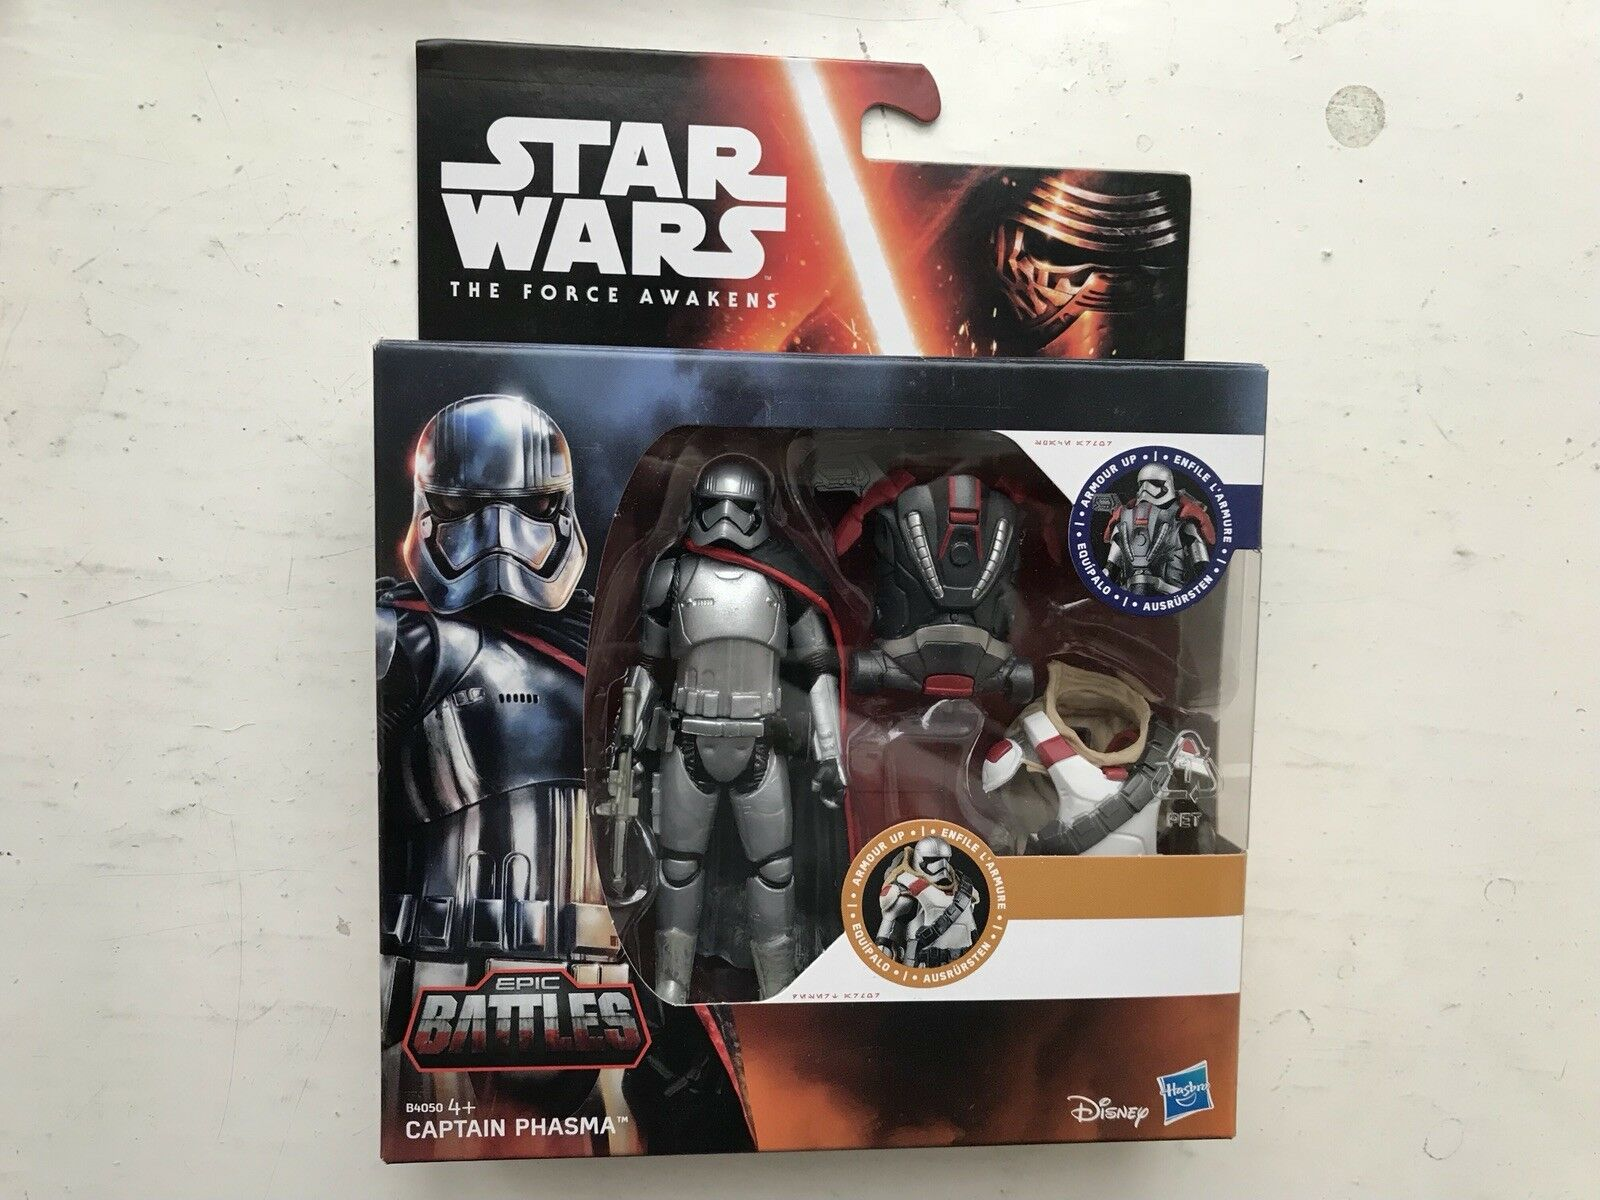 STAR WARS THE FORCE AWAKENS EPIC BATTLES SERIES CAPTAIN PHASMA FIGURE HASBRO